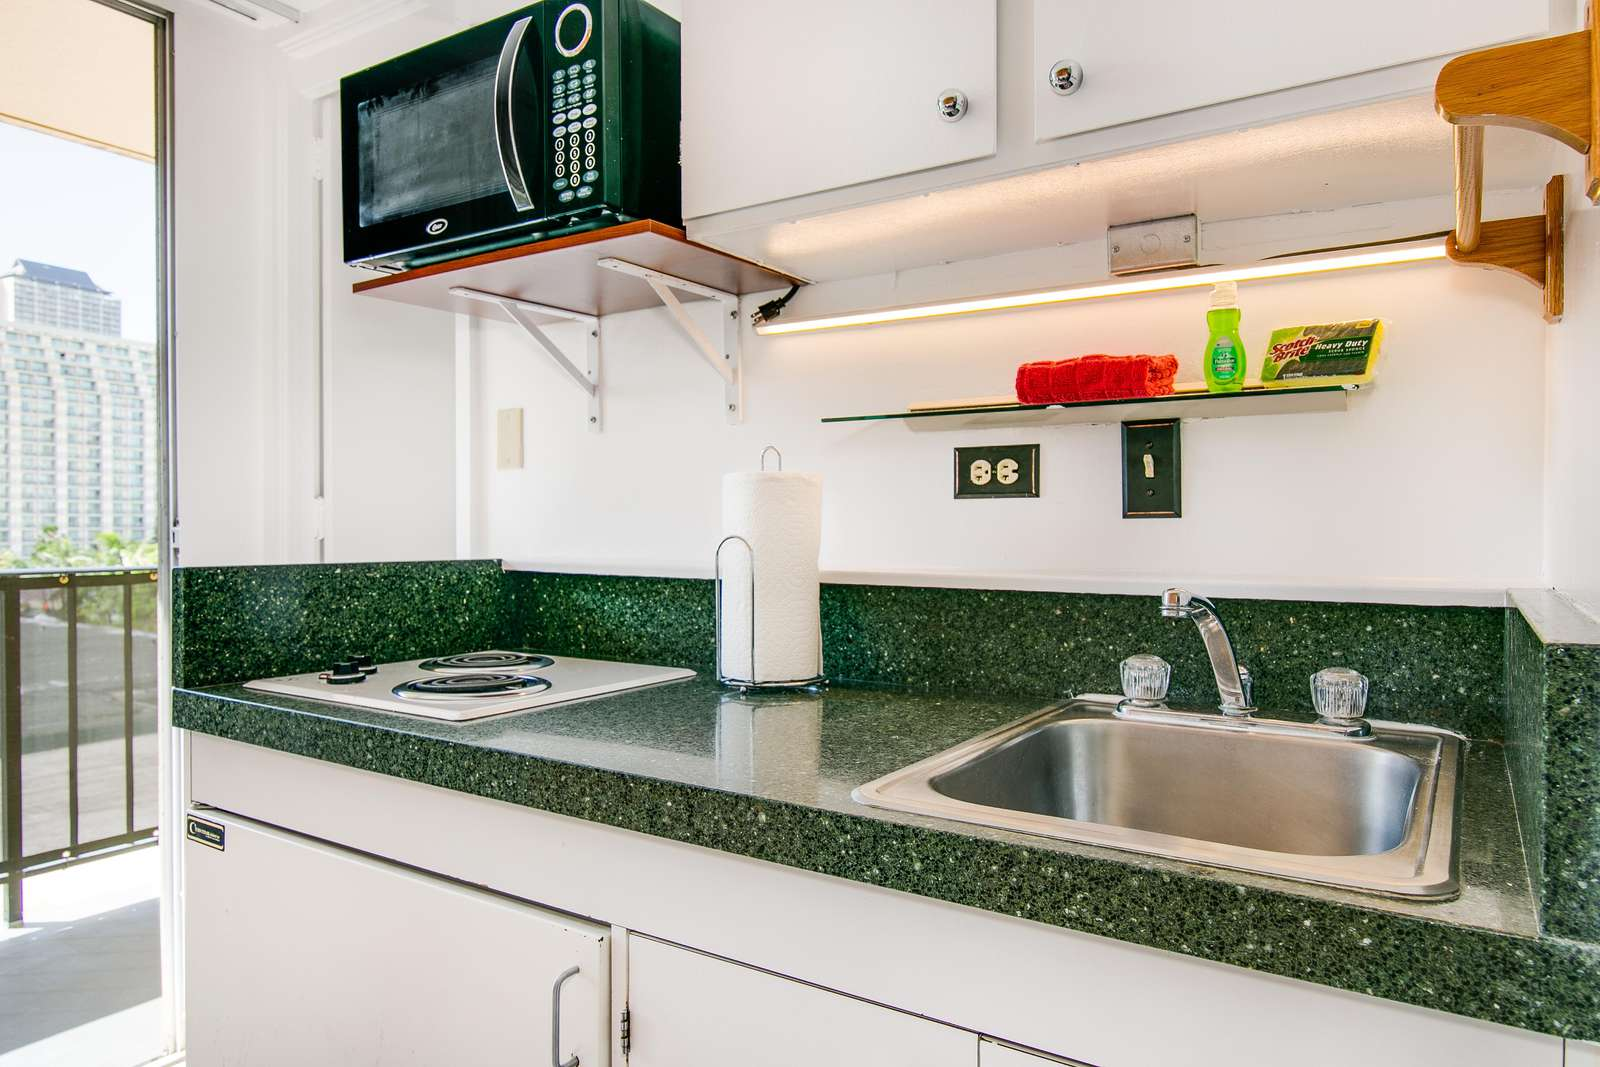 Bright and clean kitchen area